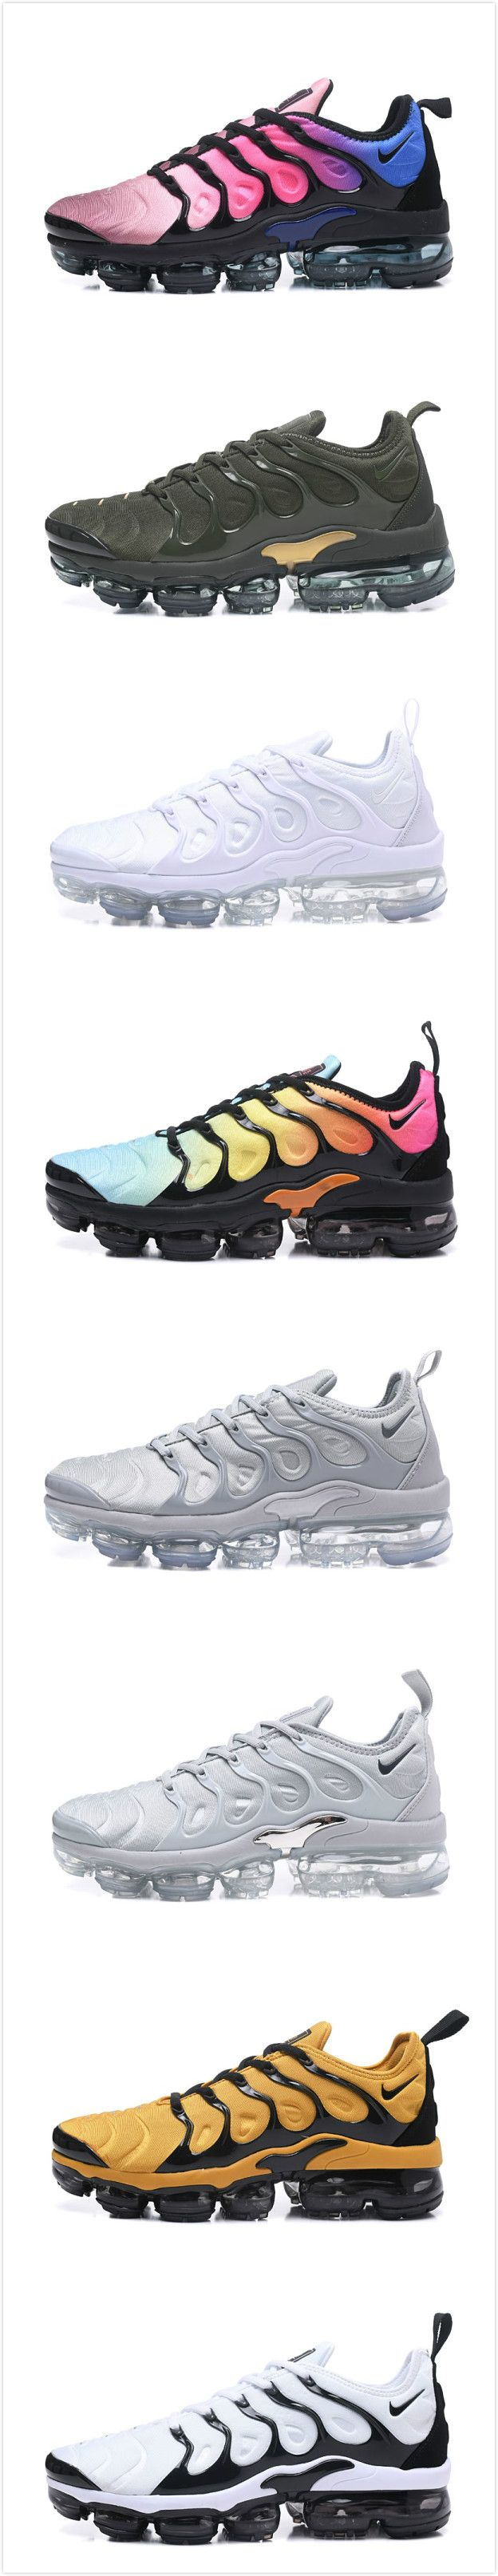 promo code 63e7d 50125 Cheap Nike Air Max TN 2018 Plus Mens shoes 8 Color For Wholesale To  Worldwide and Free Shipping